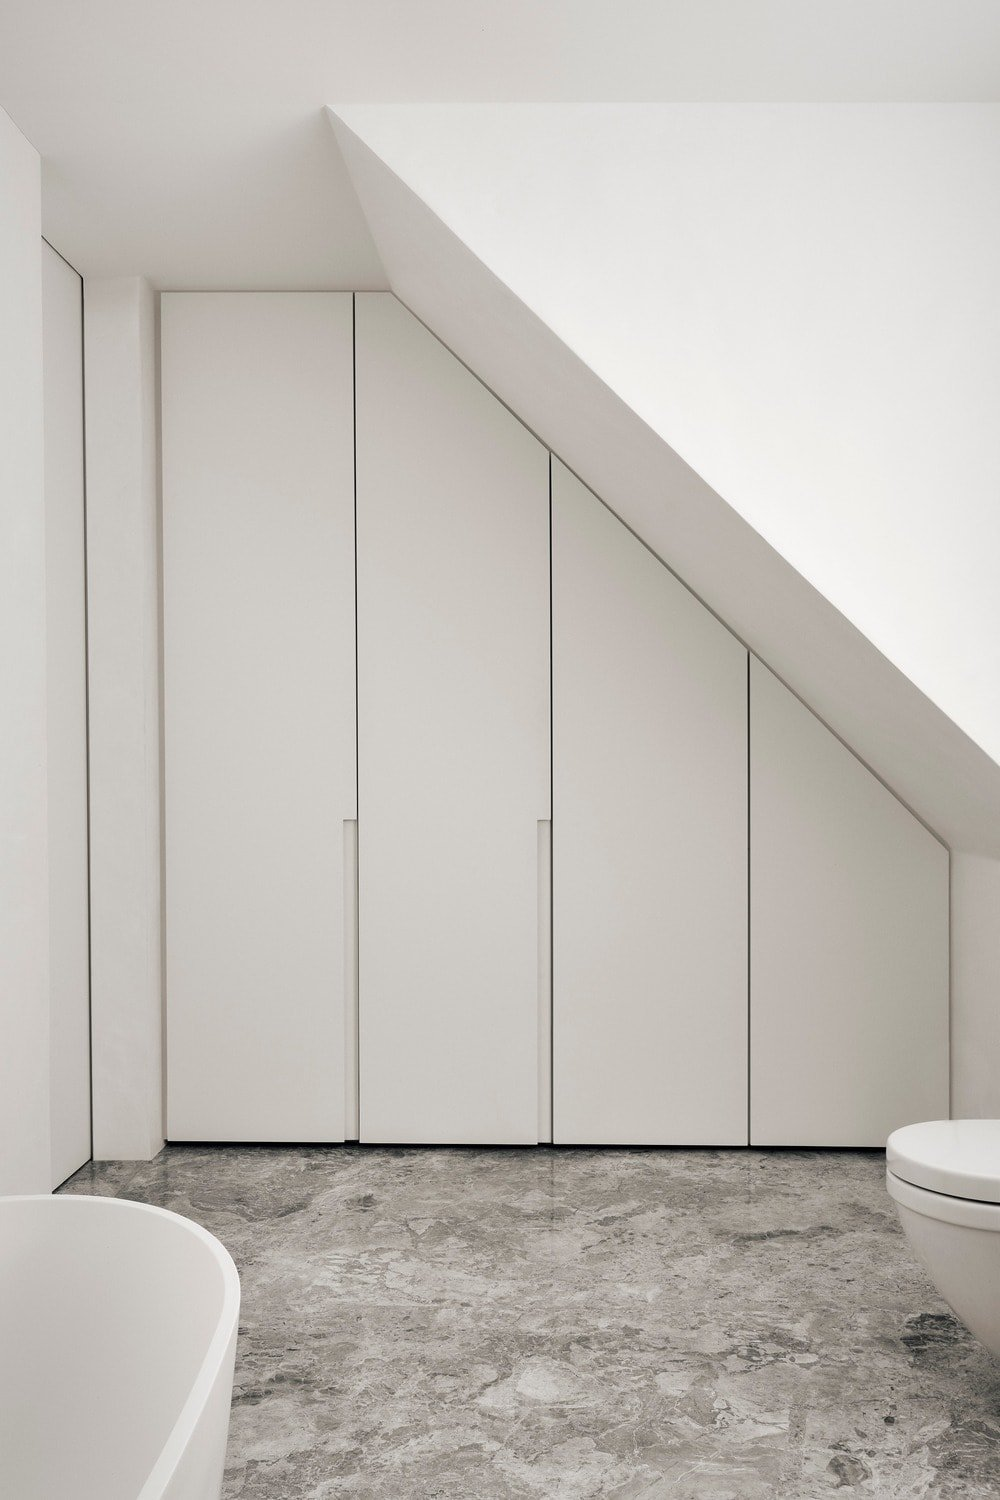 Opposite the shower area is a set of built-in cabinetry that blends well with the white walls.